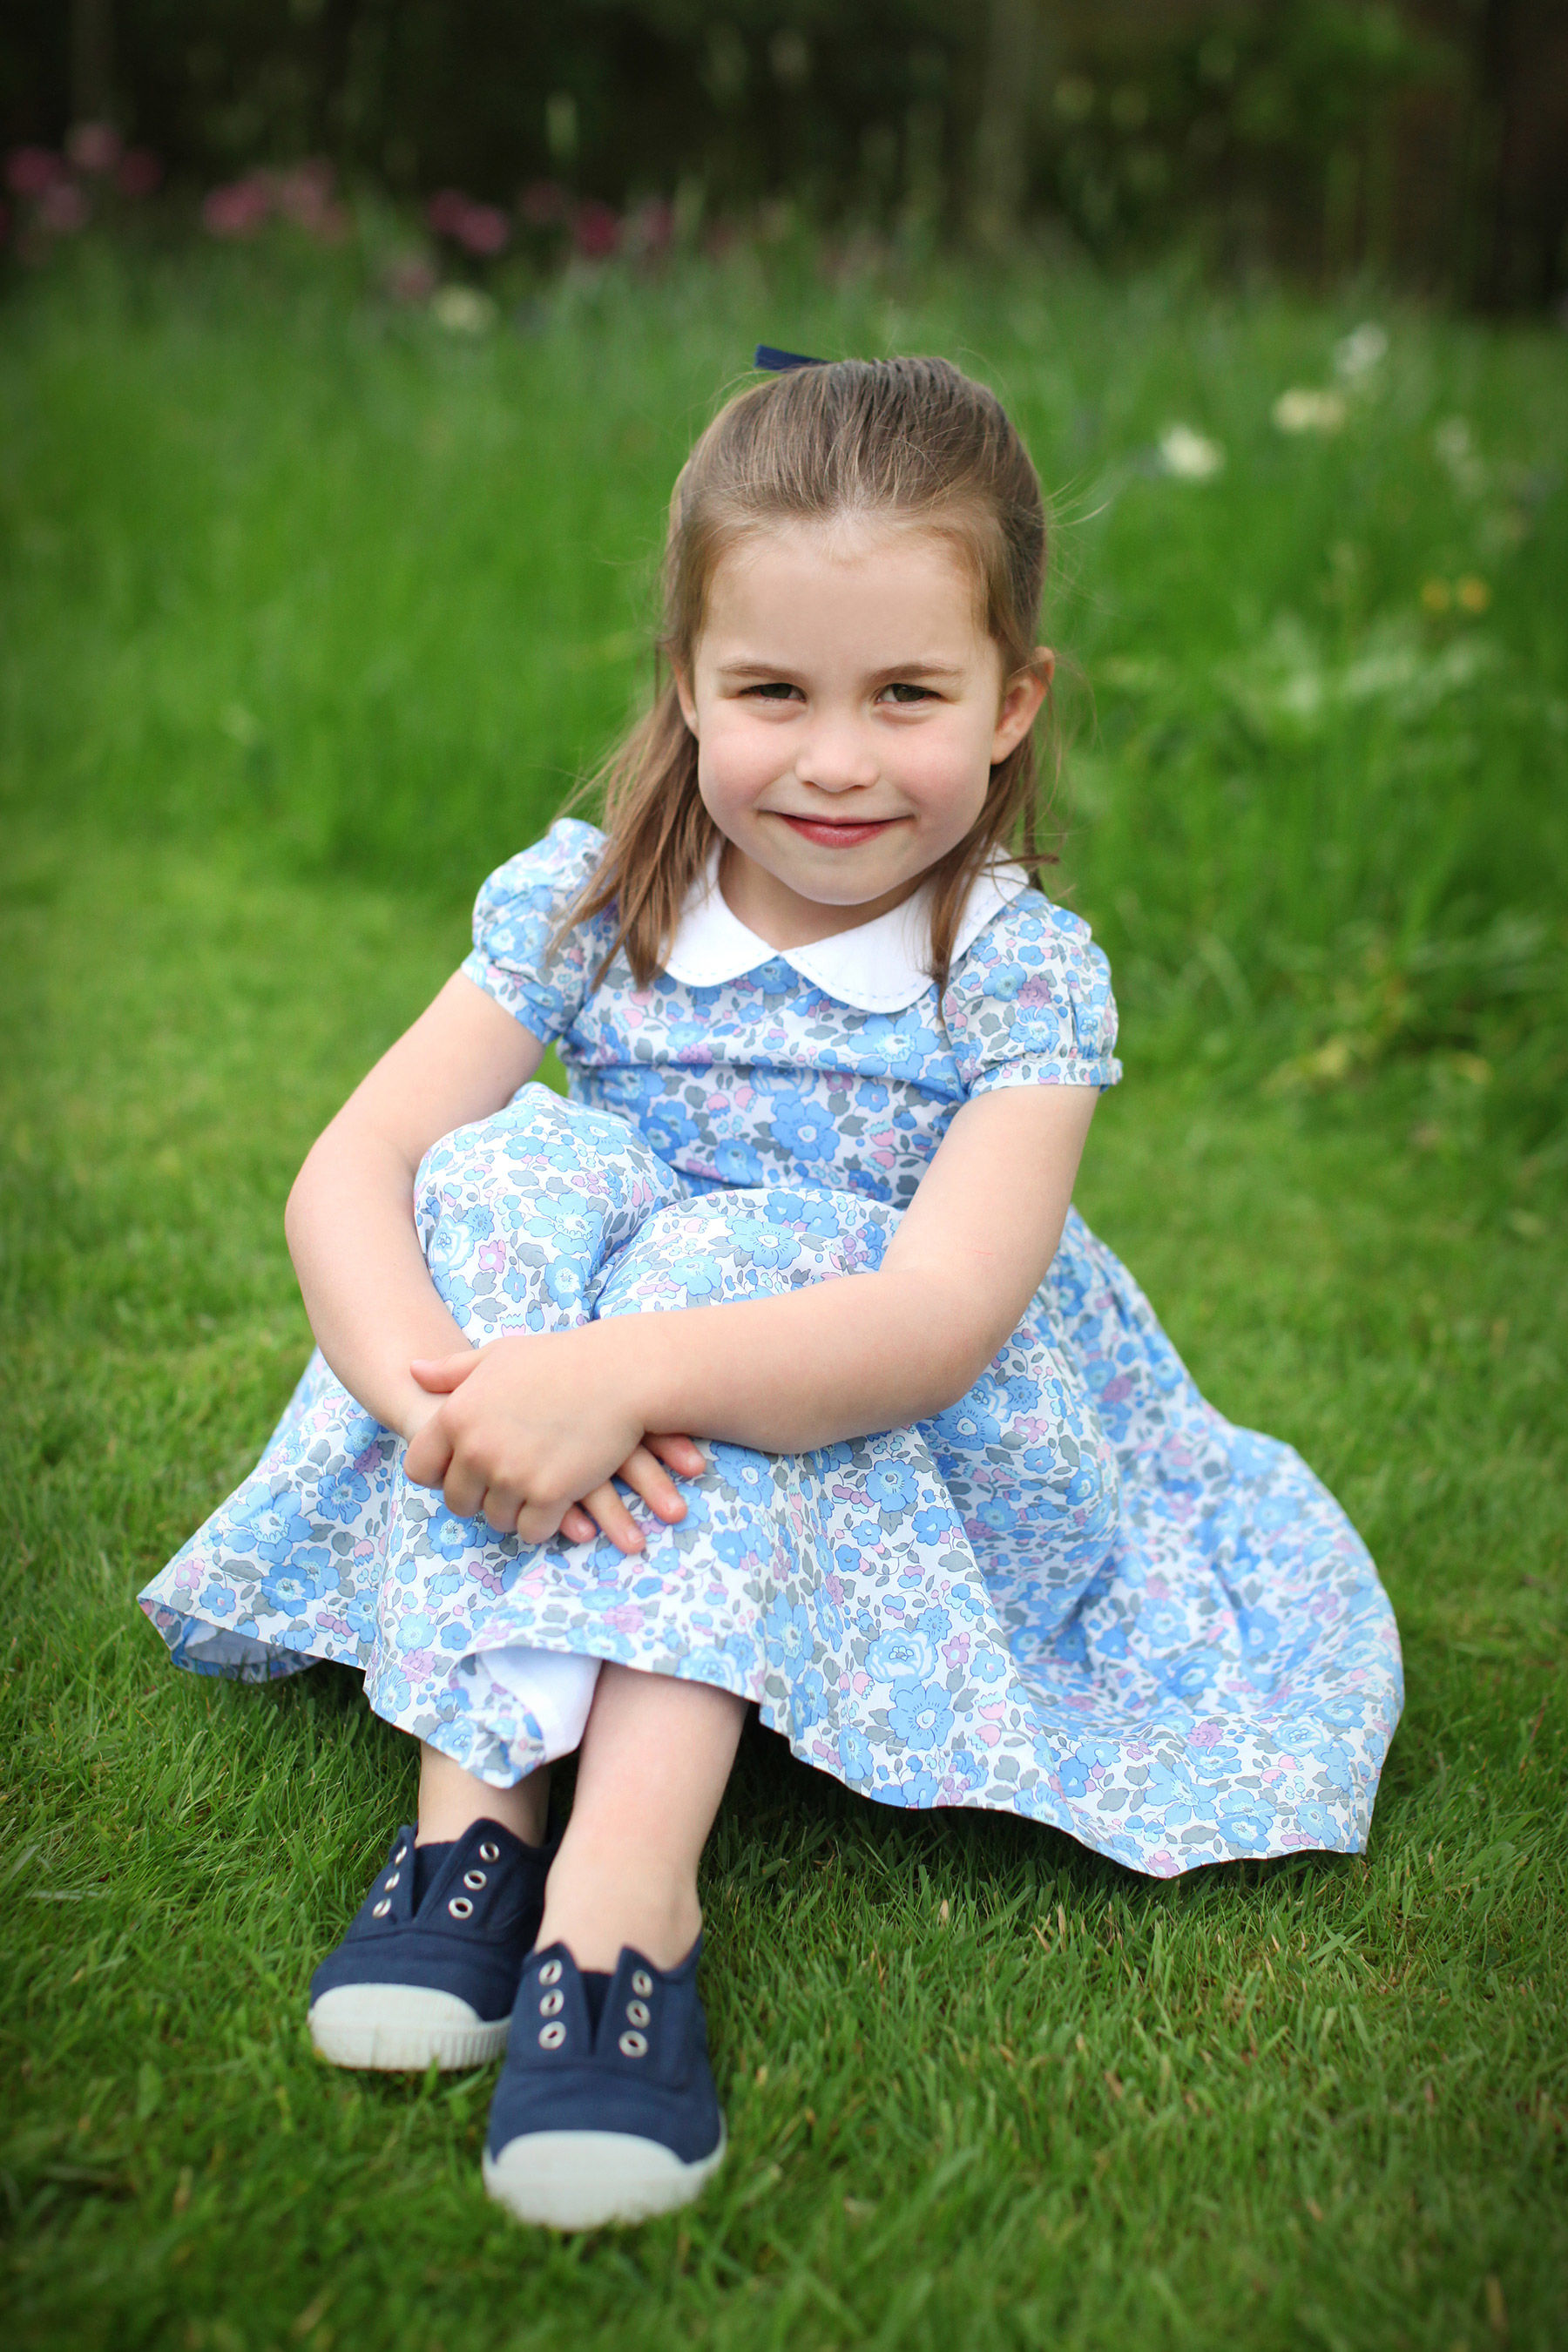 Princess Charlotte Is a Little Lady in New Birthday Photos Taken by Kate Middleton — See All 3!